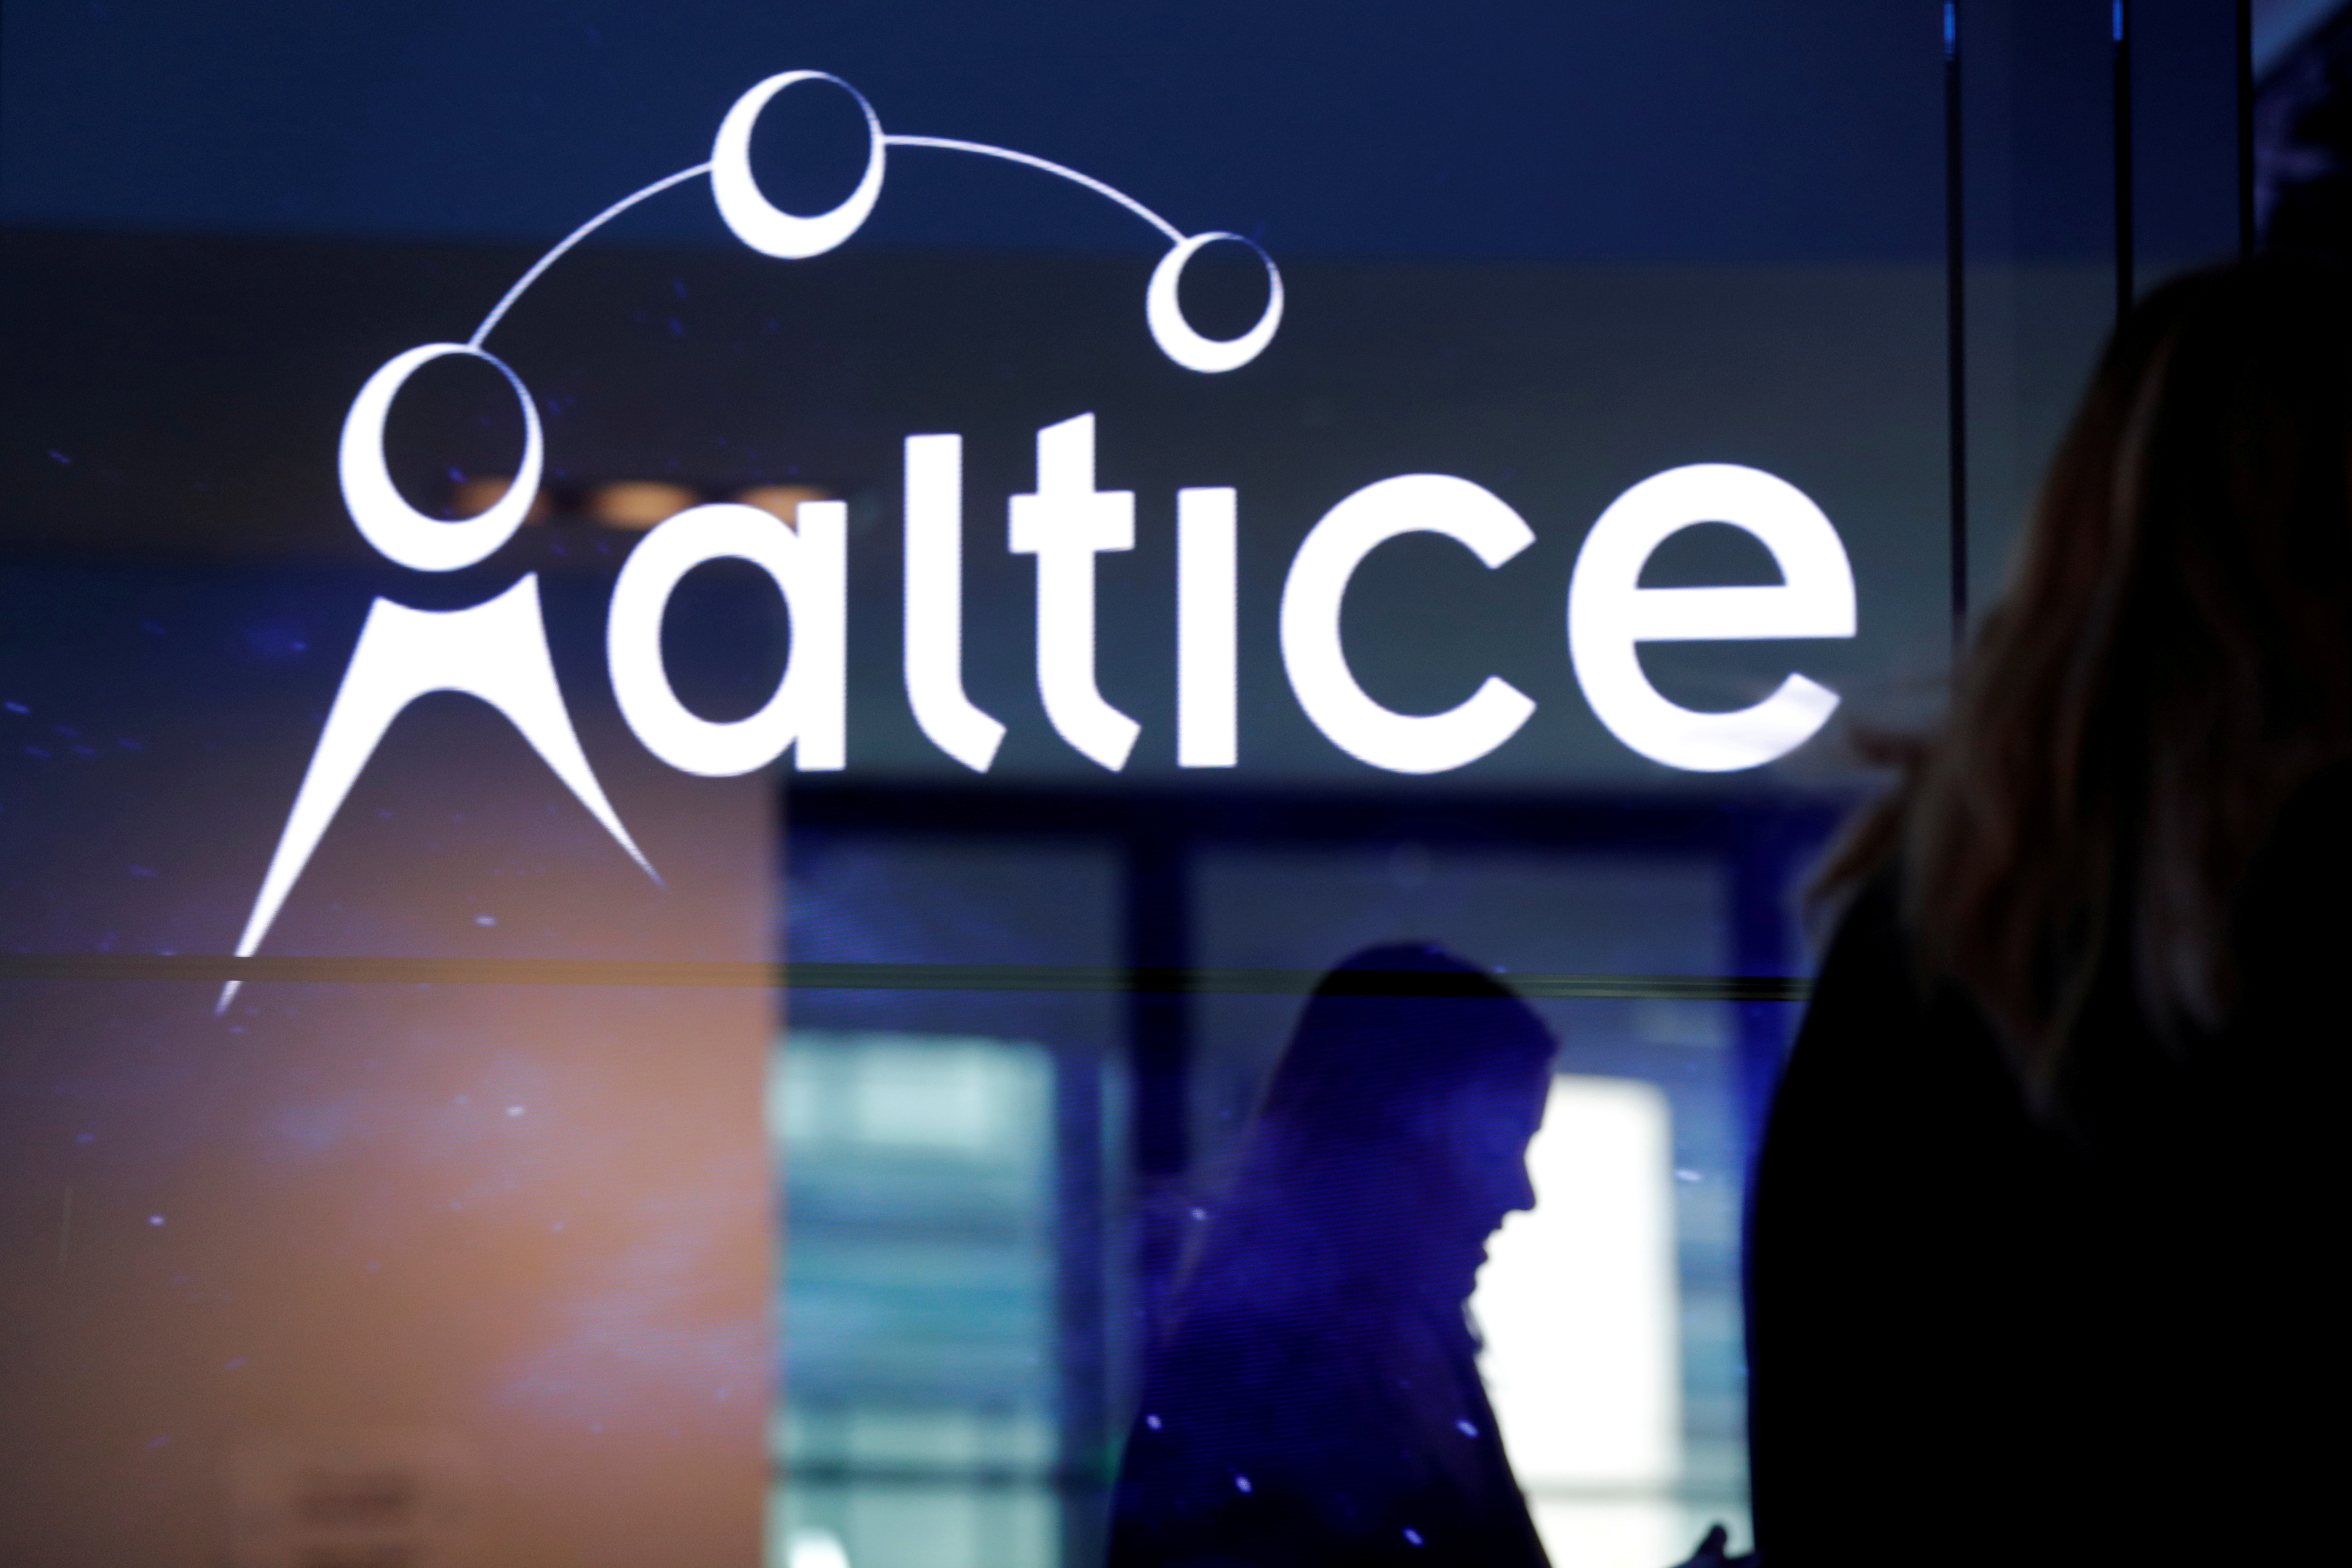 The logo of cable and mobile telecoms company Altice Group is seen during a news conference in Paris, France, March 21, 2017. REUTERS/Philippe Wojazer/File Photo